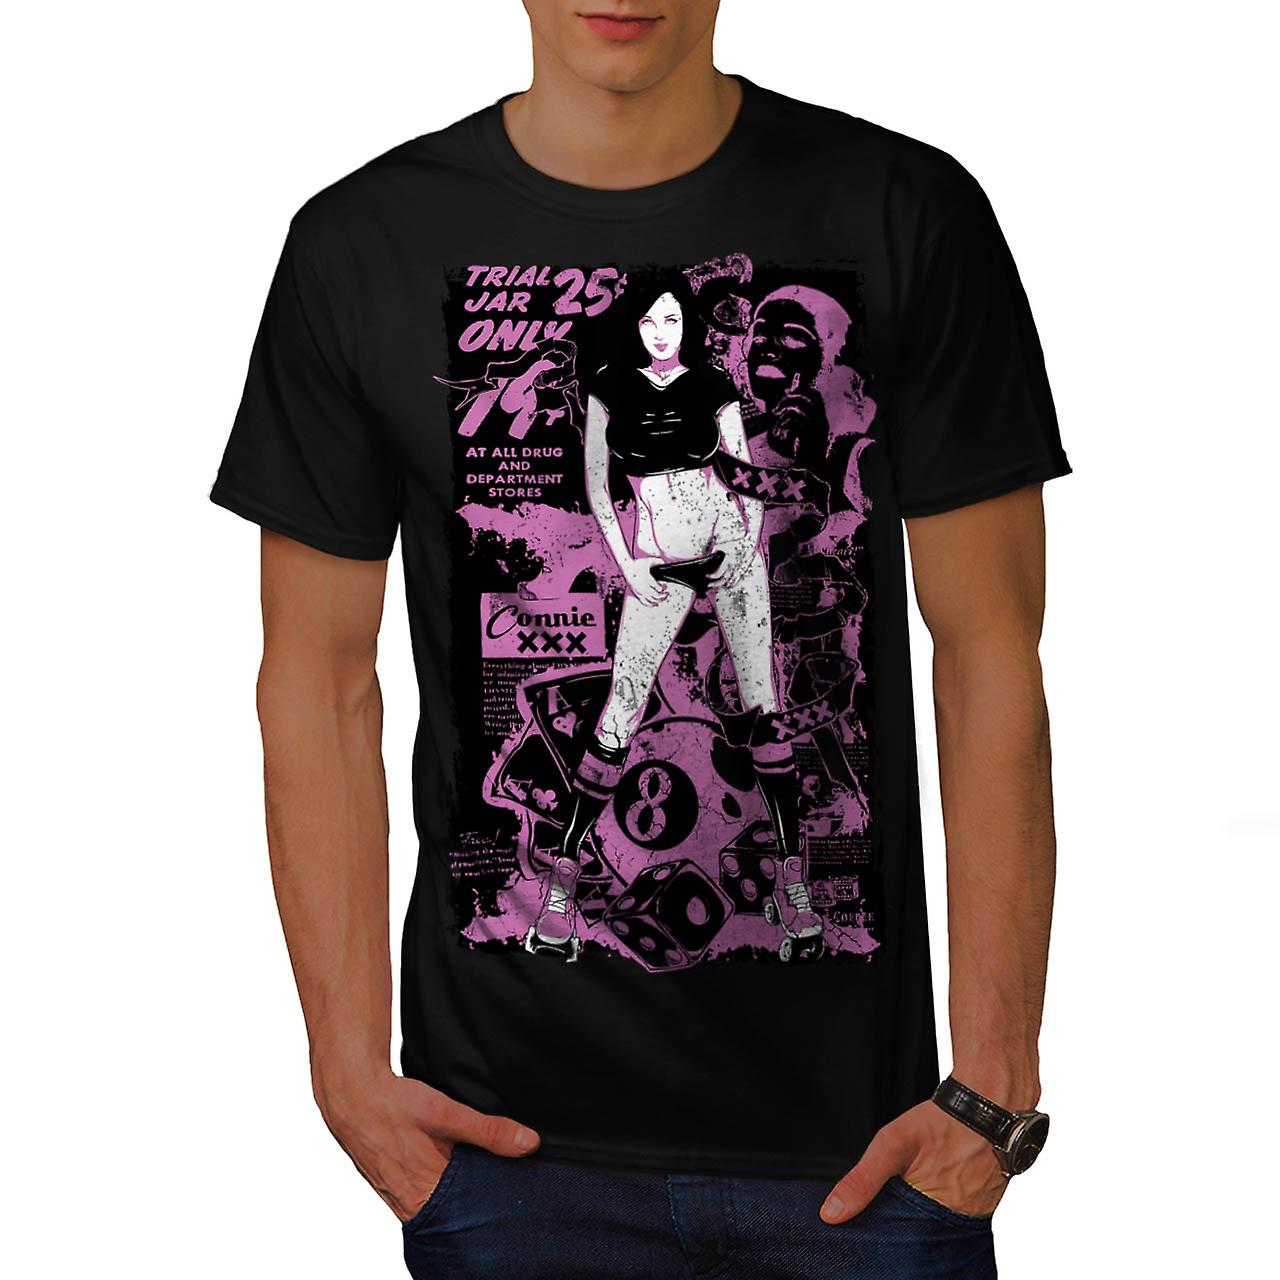 Trial Jar Gambling Casino Girl Men Black T-shirt | Wellcoda